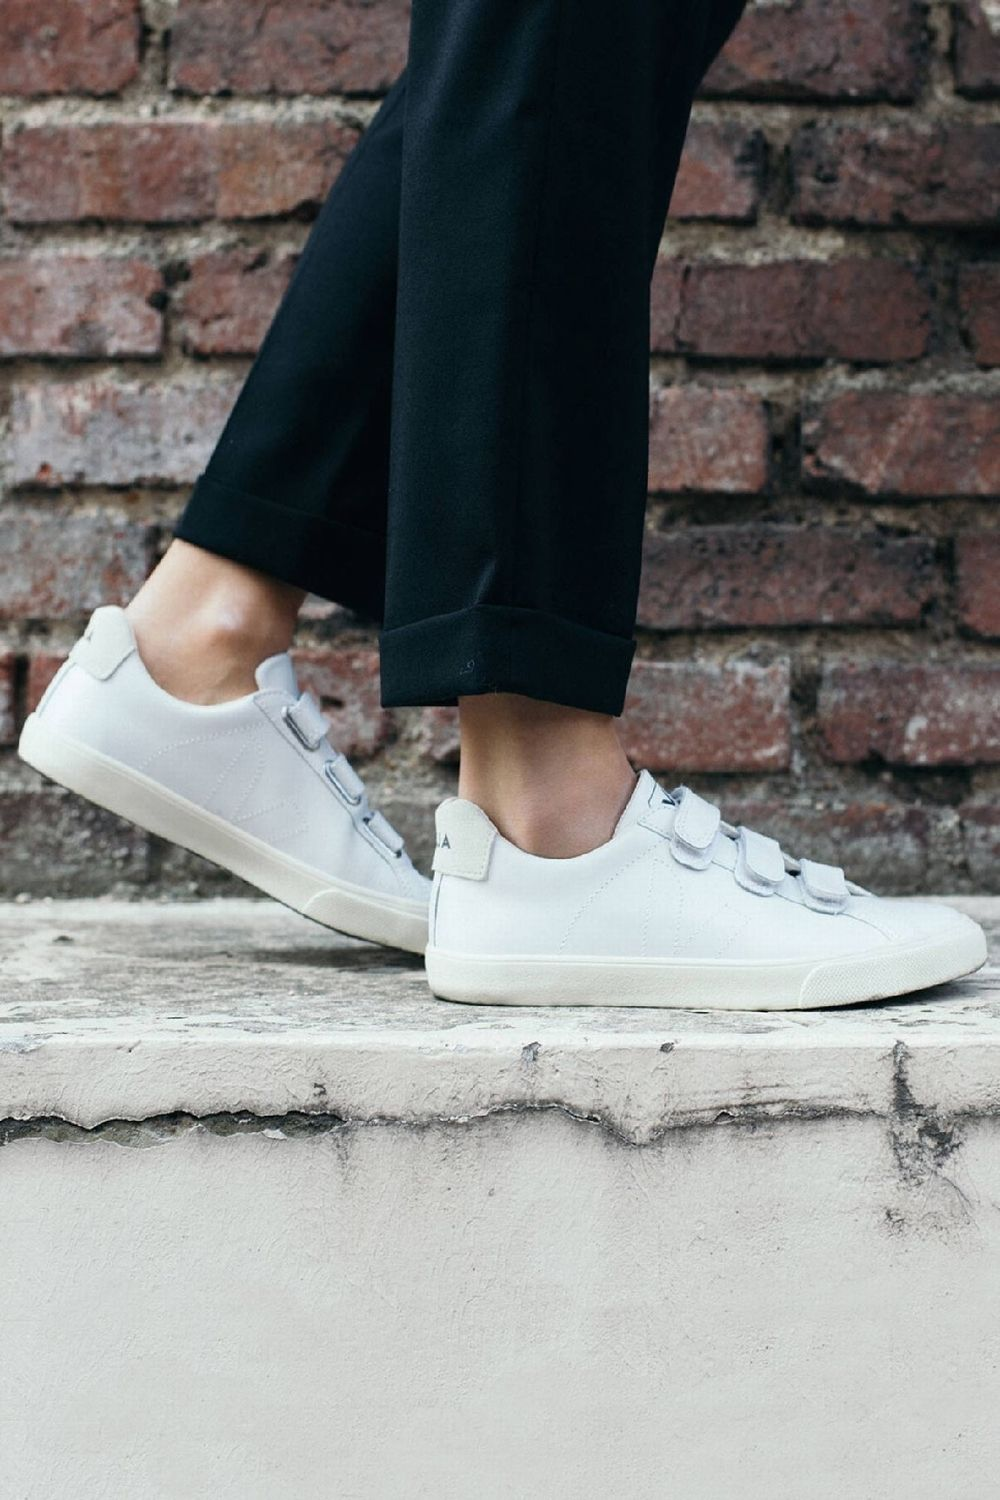 5b6e6c7a83c023 VEJA - 3 LOCK SNEAKERS | CENTRE COMMERCIAL | clothing mathematics in ...